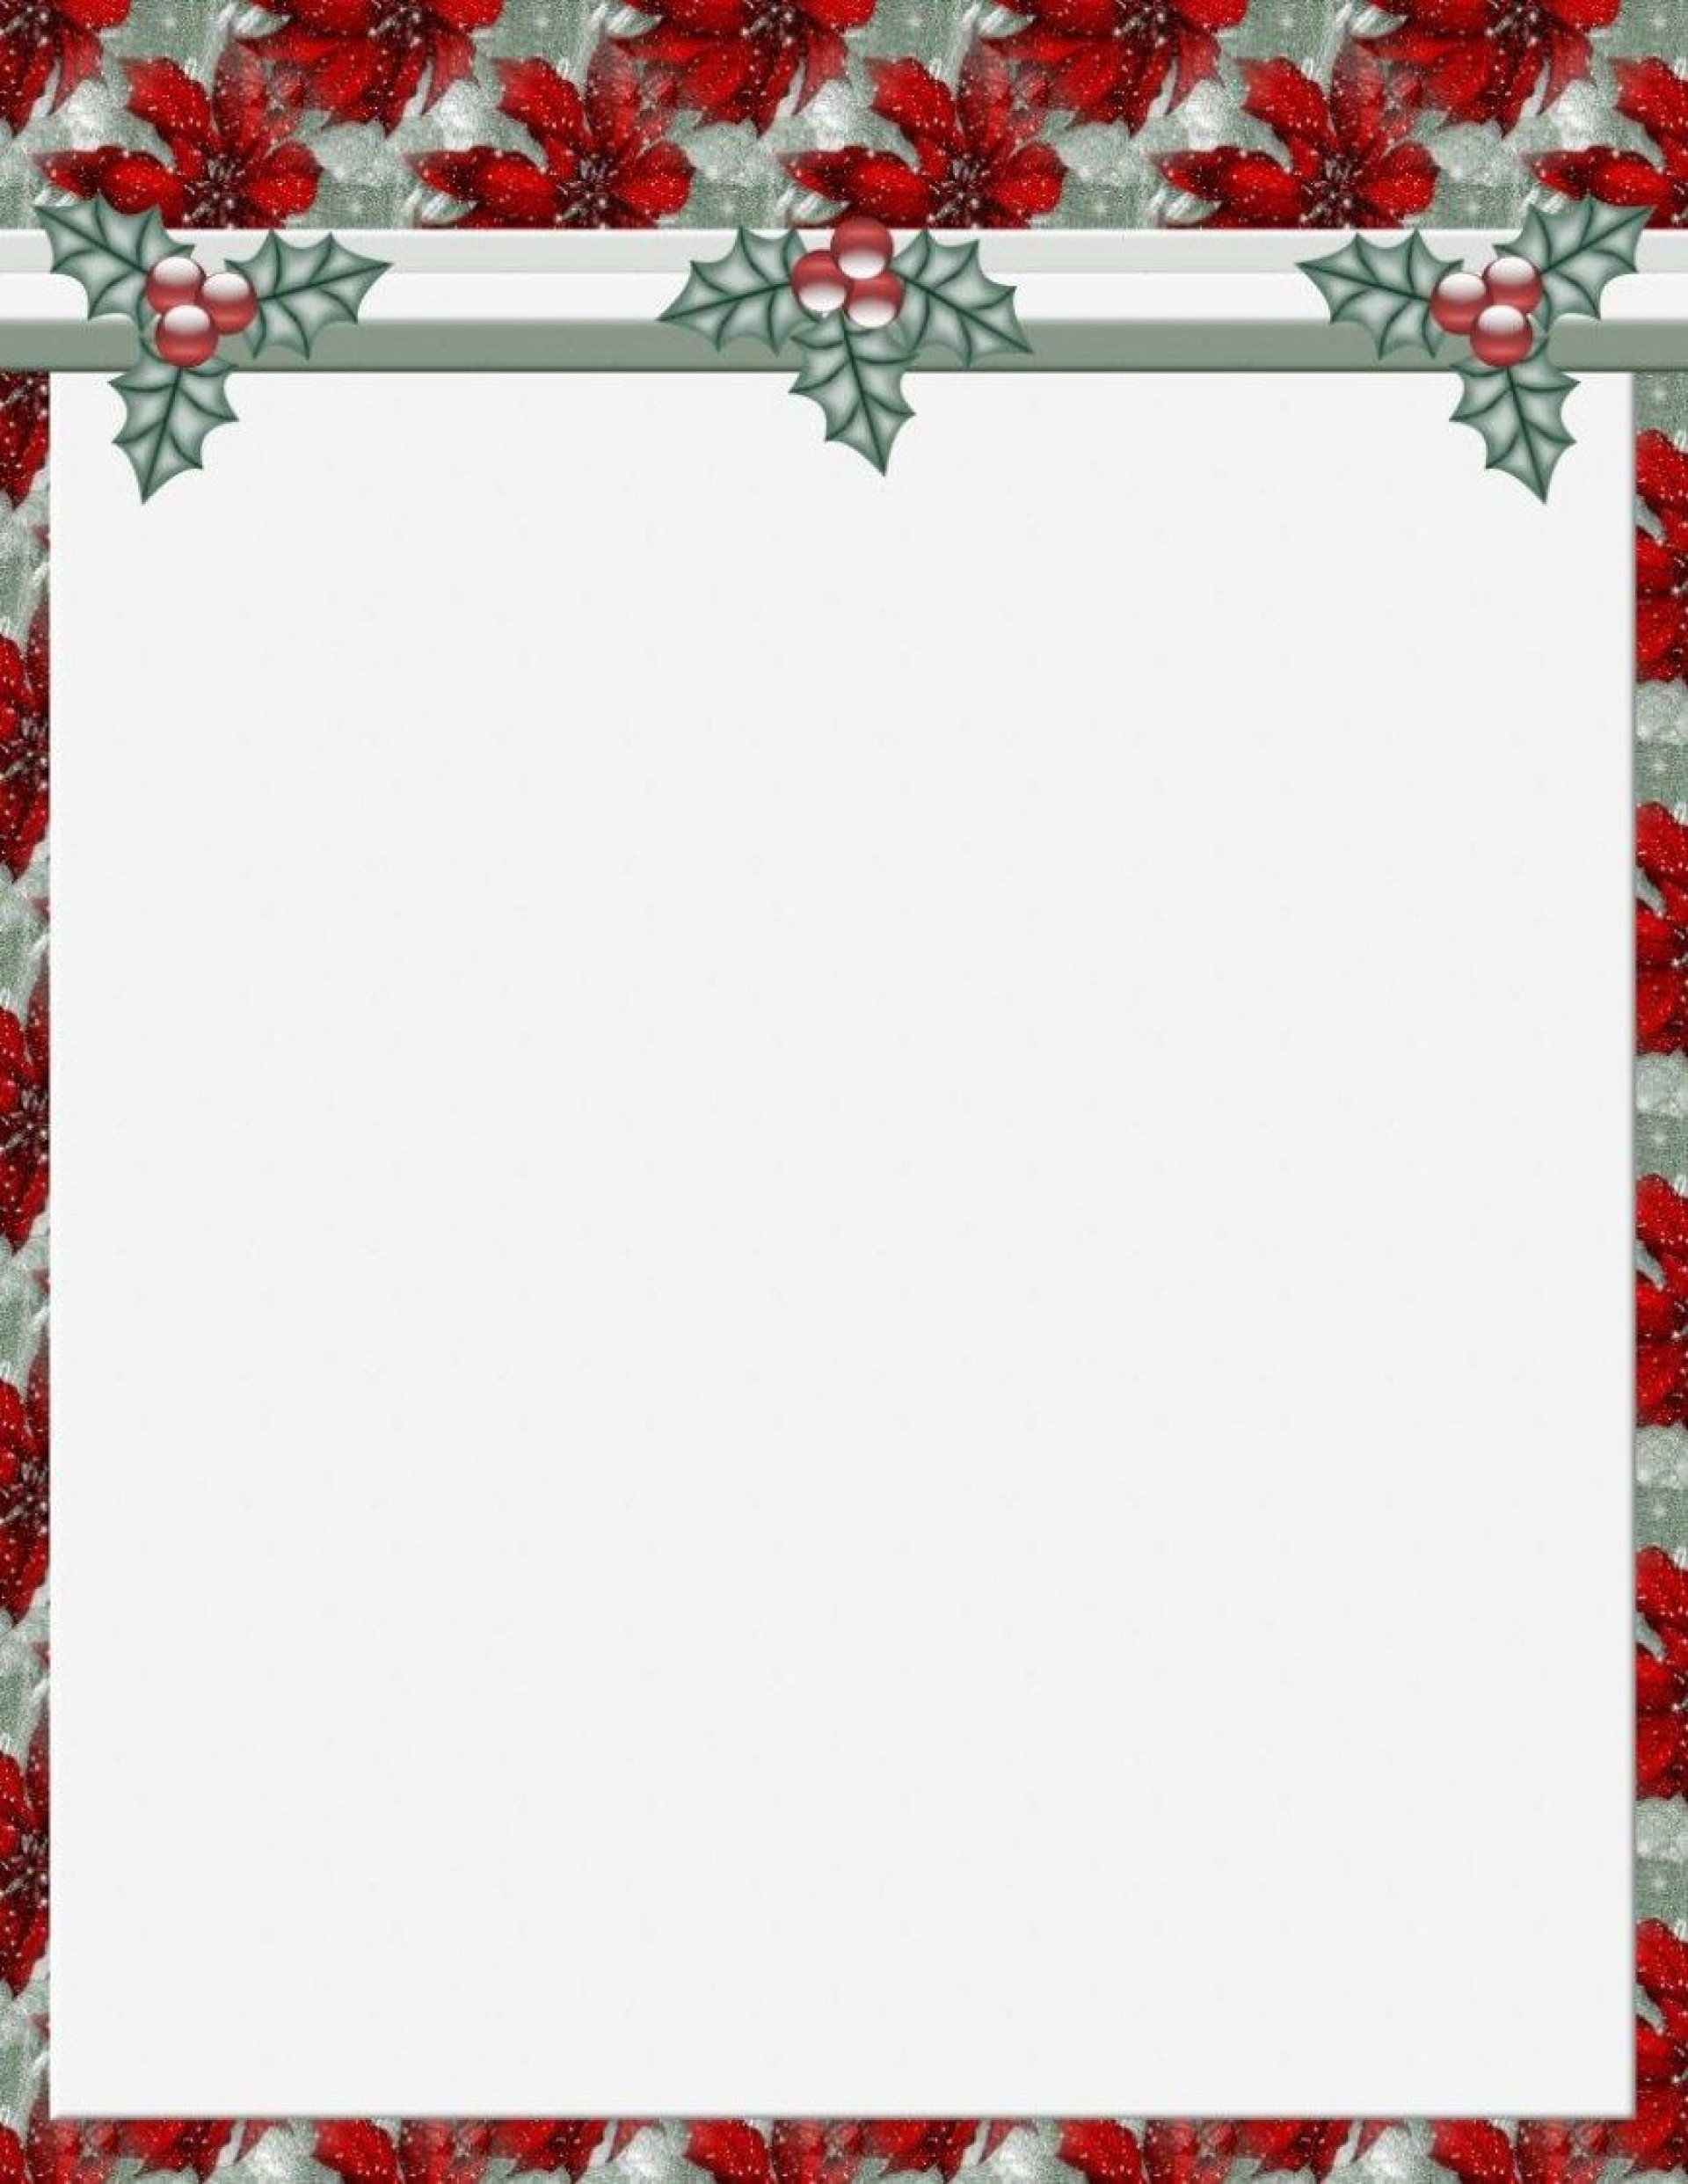 011 Stunning Free Holiday Stationery Template For Word Highest Clarity 1920